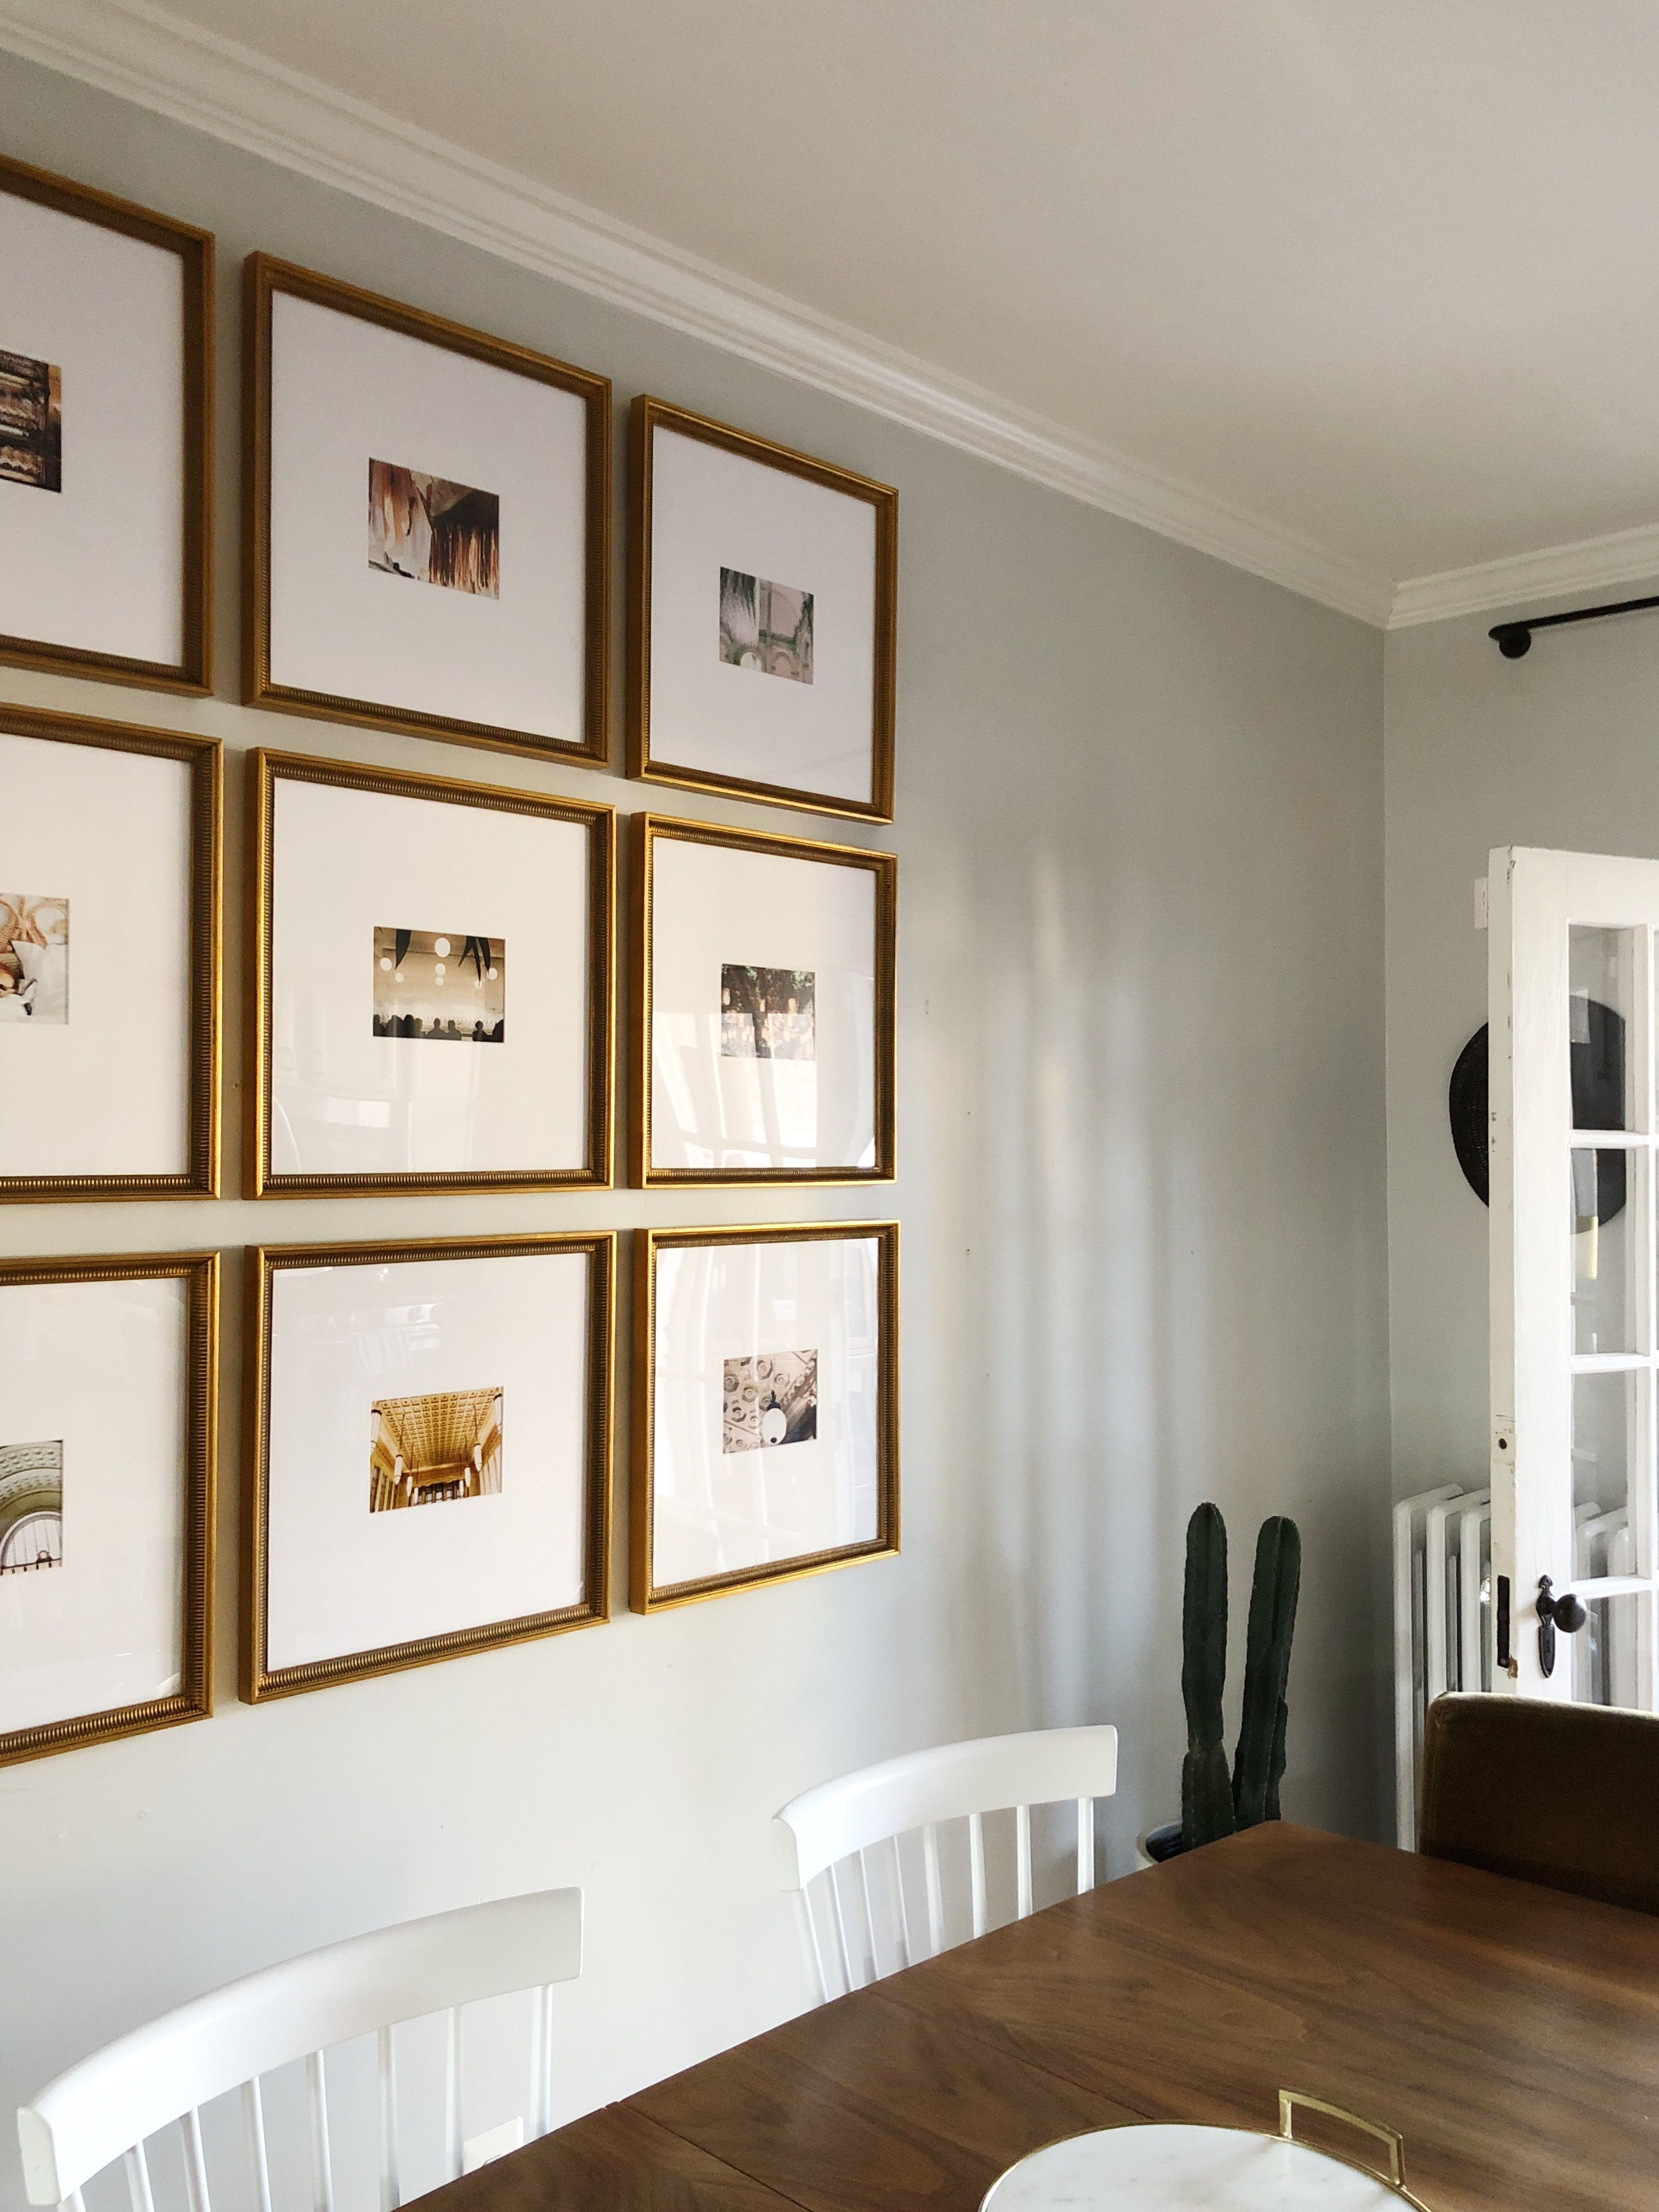 The Half Wall Grid Gallery Wall Nine Photos Oversized Mats Undeniably Gorgeous Gallery Wall Framebridge Gallery Wall Gallery Wall Layout